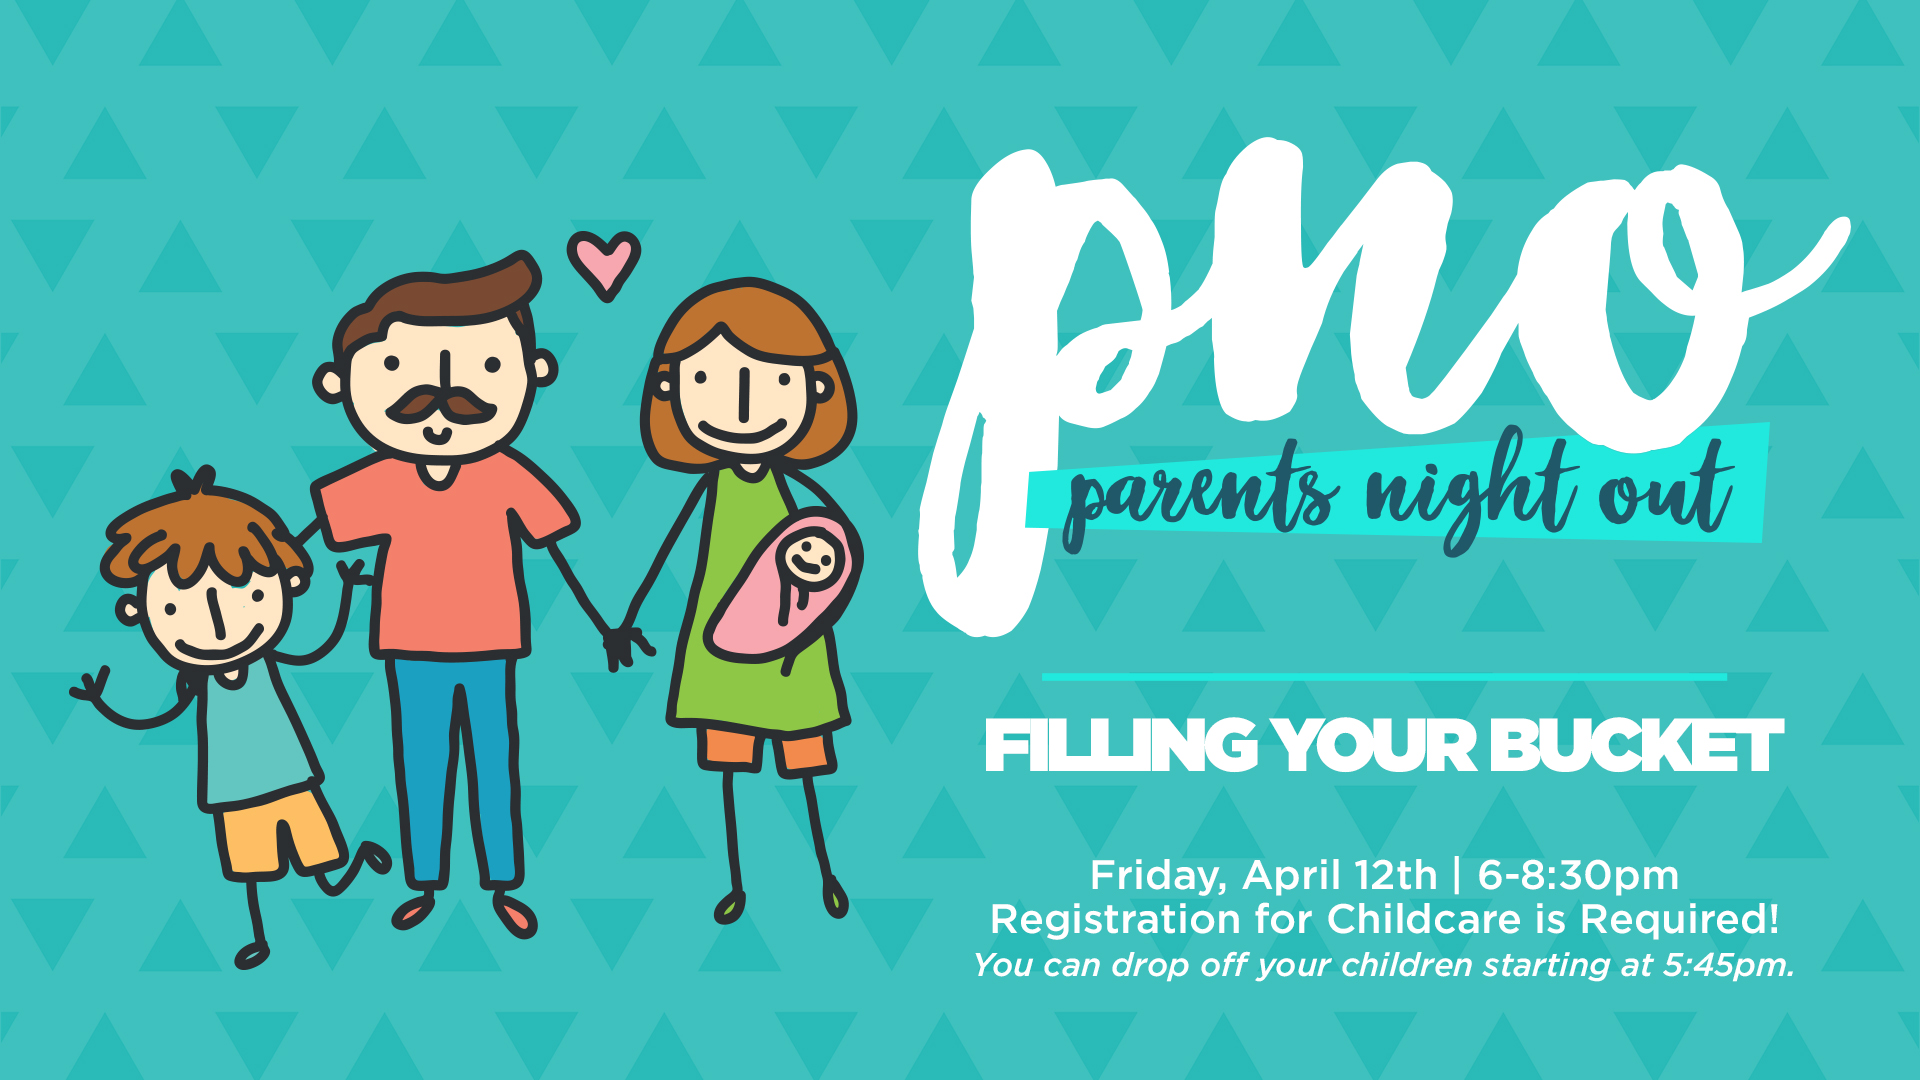 "April's PNO is continuing off the theme from March, ""Filling Your Bucket"". This is open to any parents with young children, ages 0-5th grade. Parents can drop off pre-registered children starting at 5:45pm. At 6pm, there's a short motivational talk in the Refuge before couples leave for their date. Children must be picked up by 8:30pm. Children must be registered in order to have appropriate child care workers. Use the form below to register. If you have questions, contact KristinB@MyPeaceChurch.com."